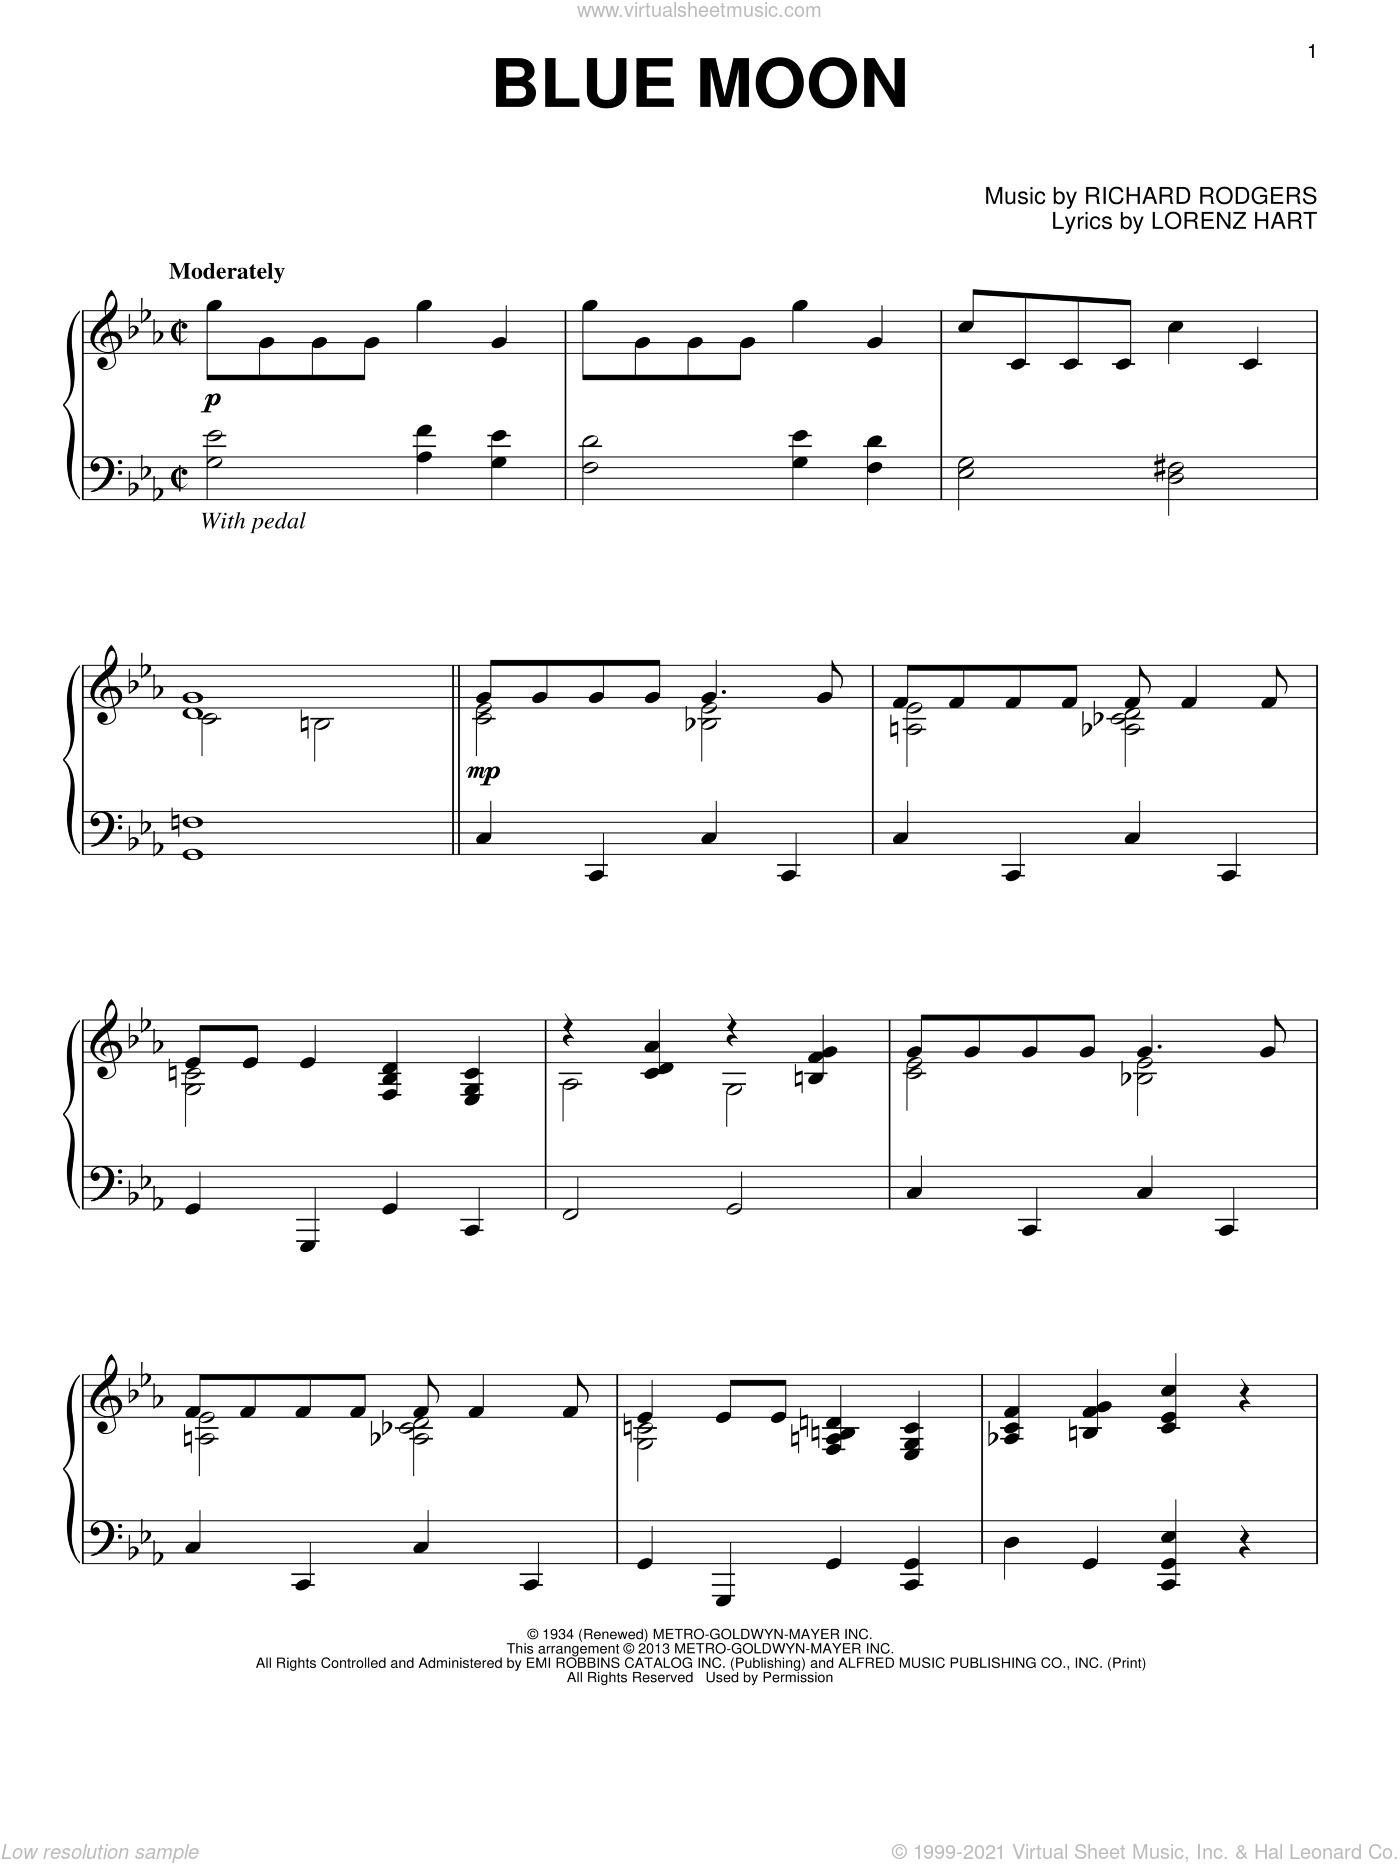 Blue Moon sheet music for piano solo by Rodgers & Hart, Elvis Presley, Lorenz Hart, Richard Rodgers and The Marcels, intermediate skill level